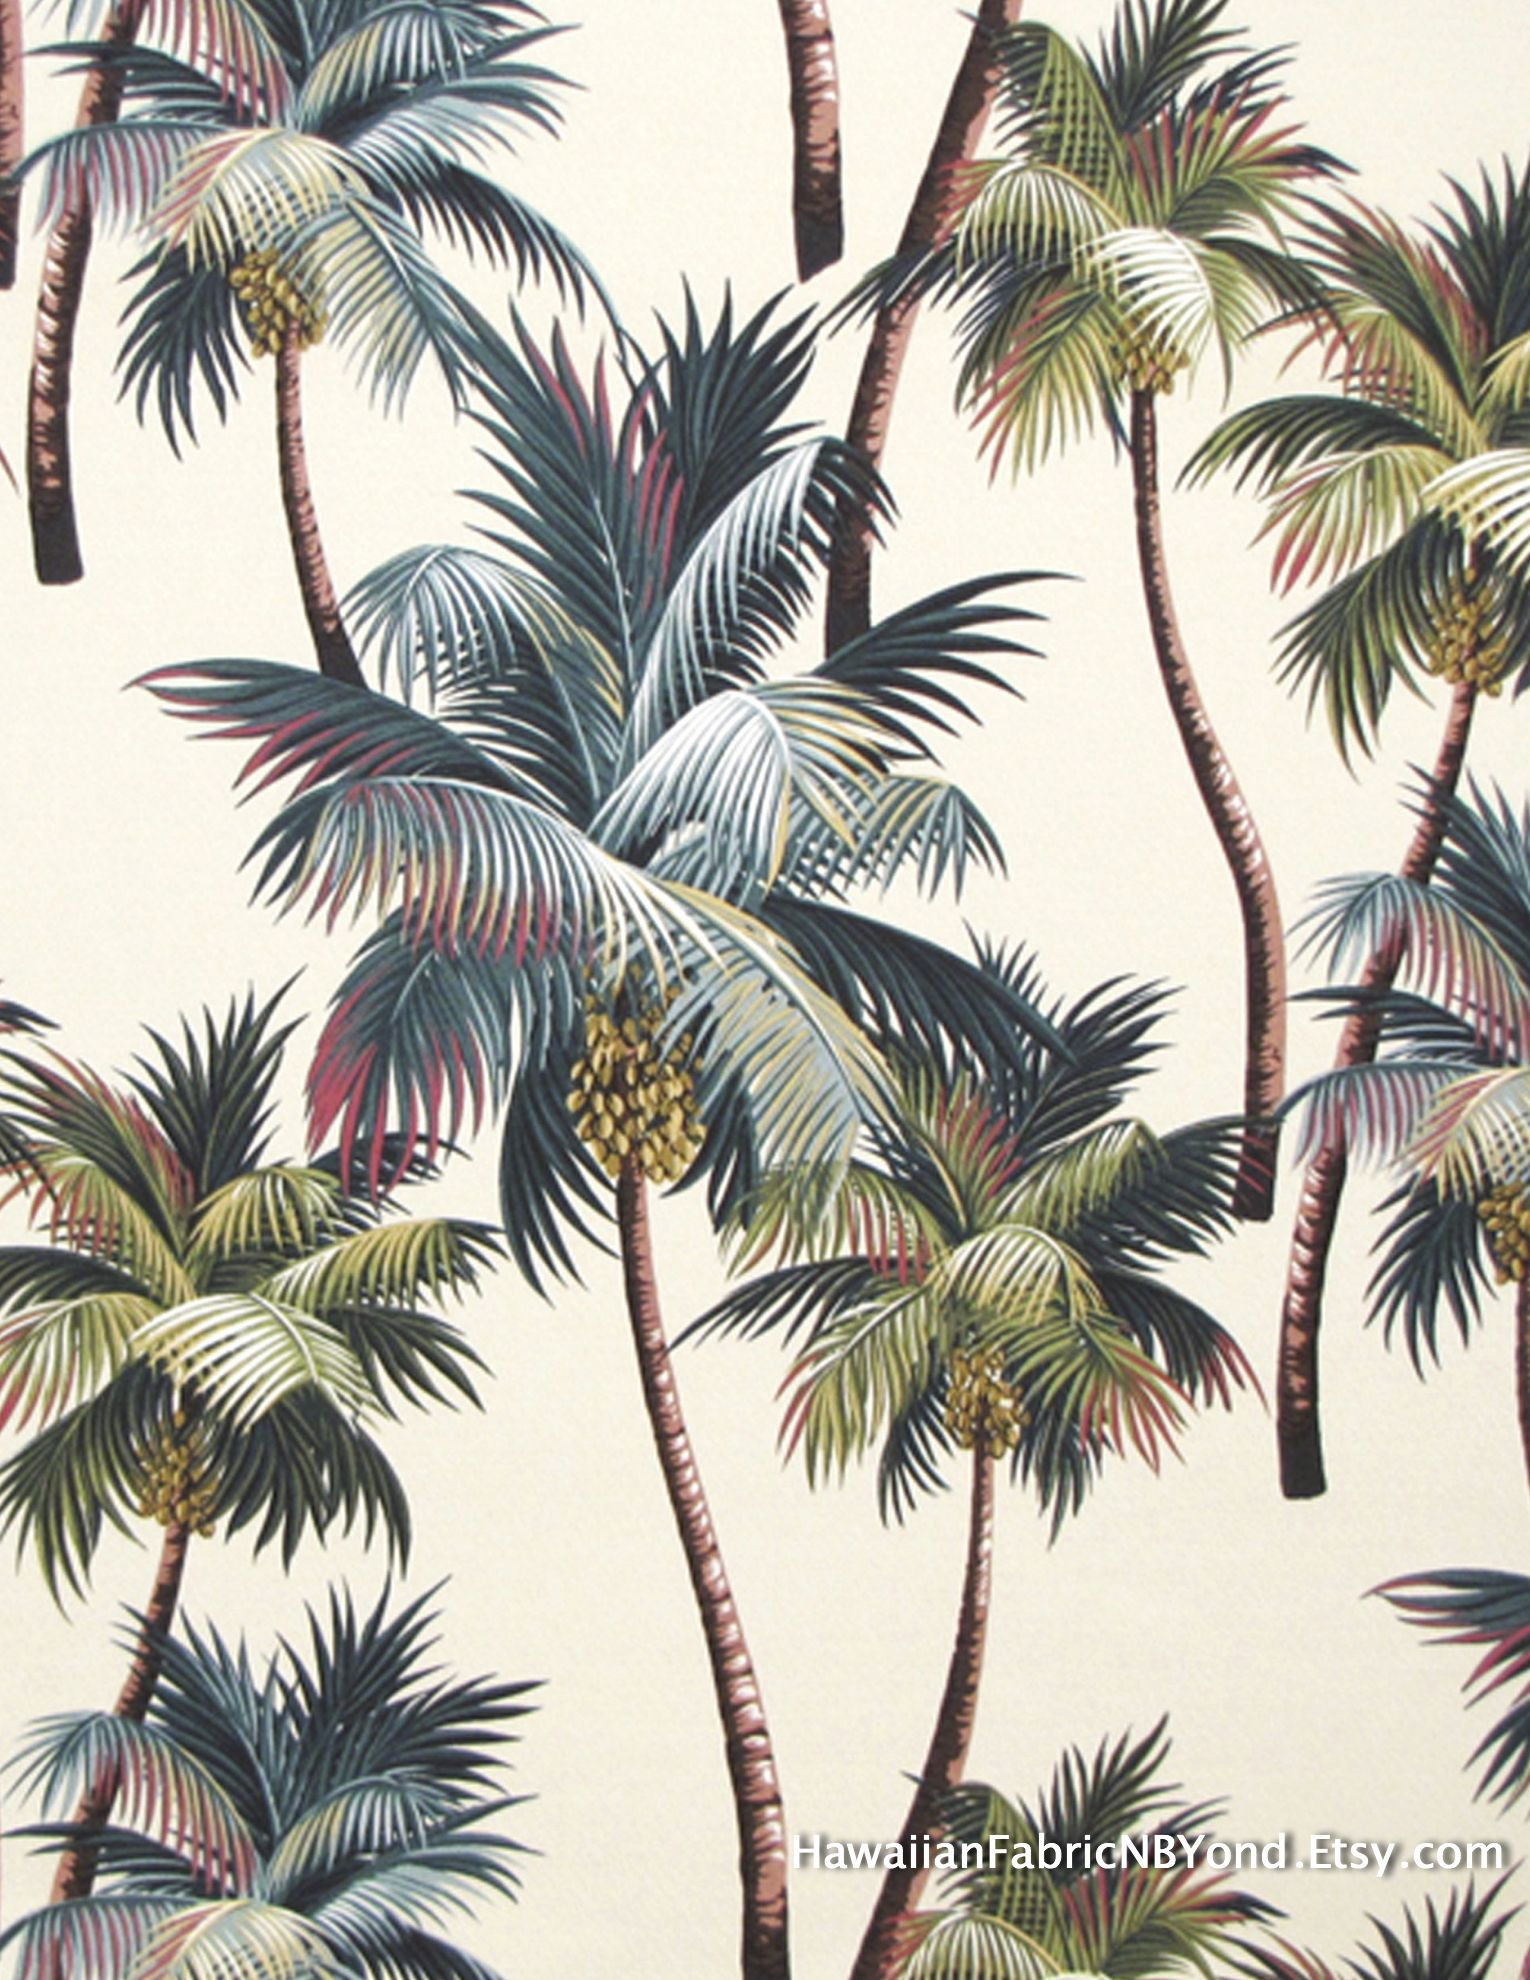 Upholstery Fabric Stunning Array Of Palm Trees For Tropical Home